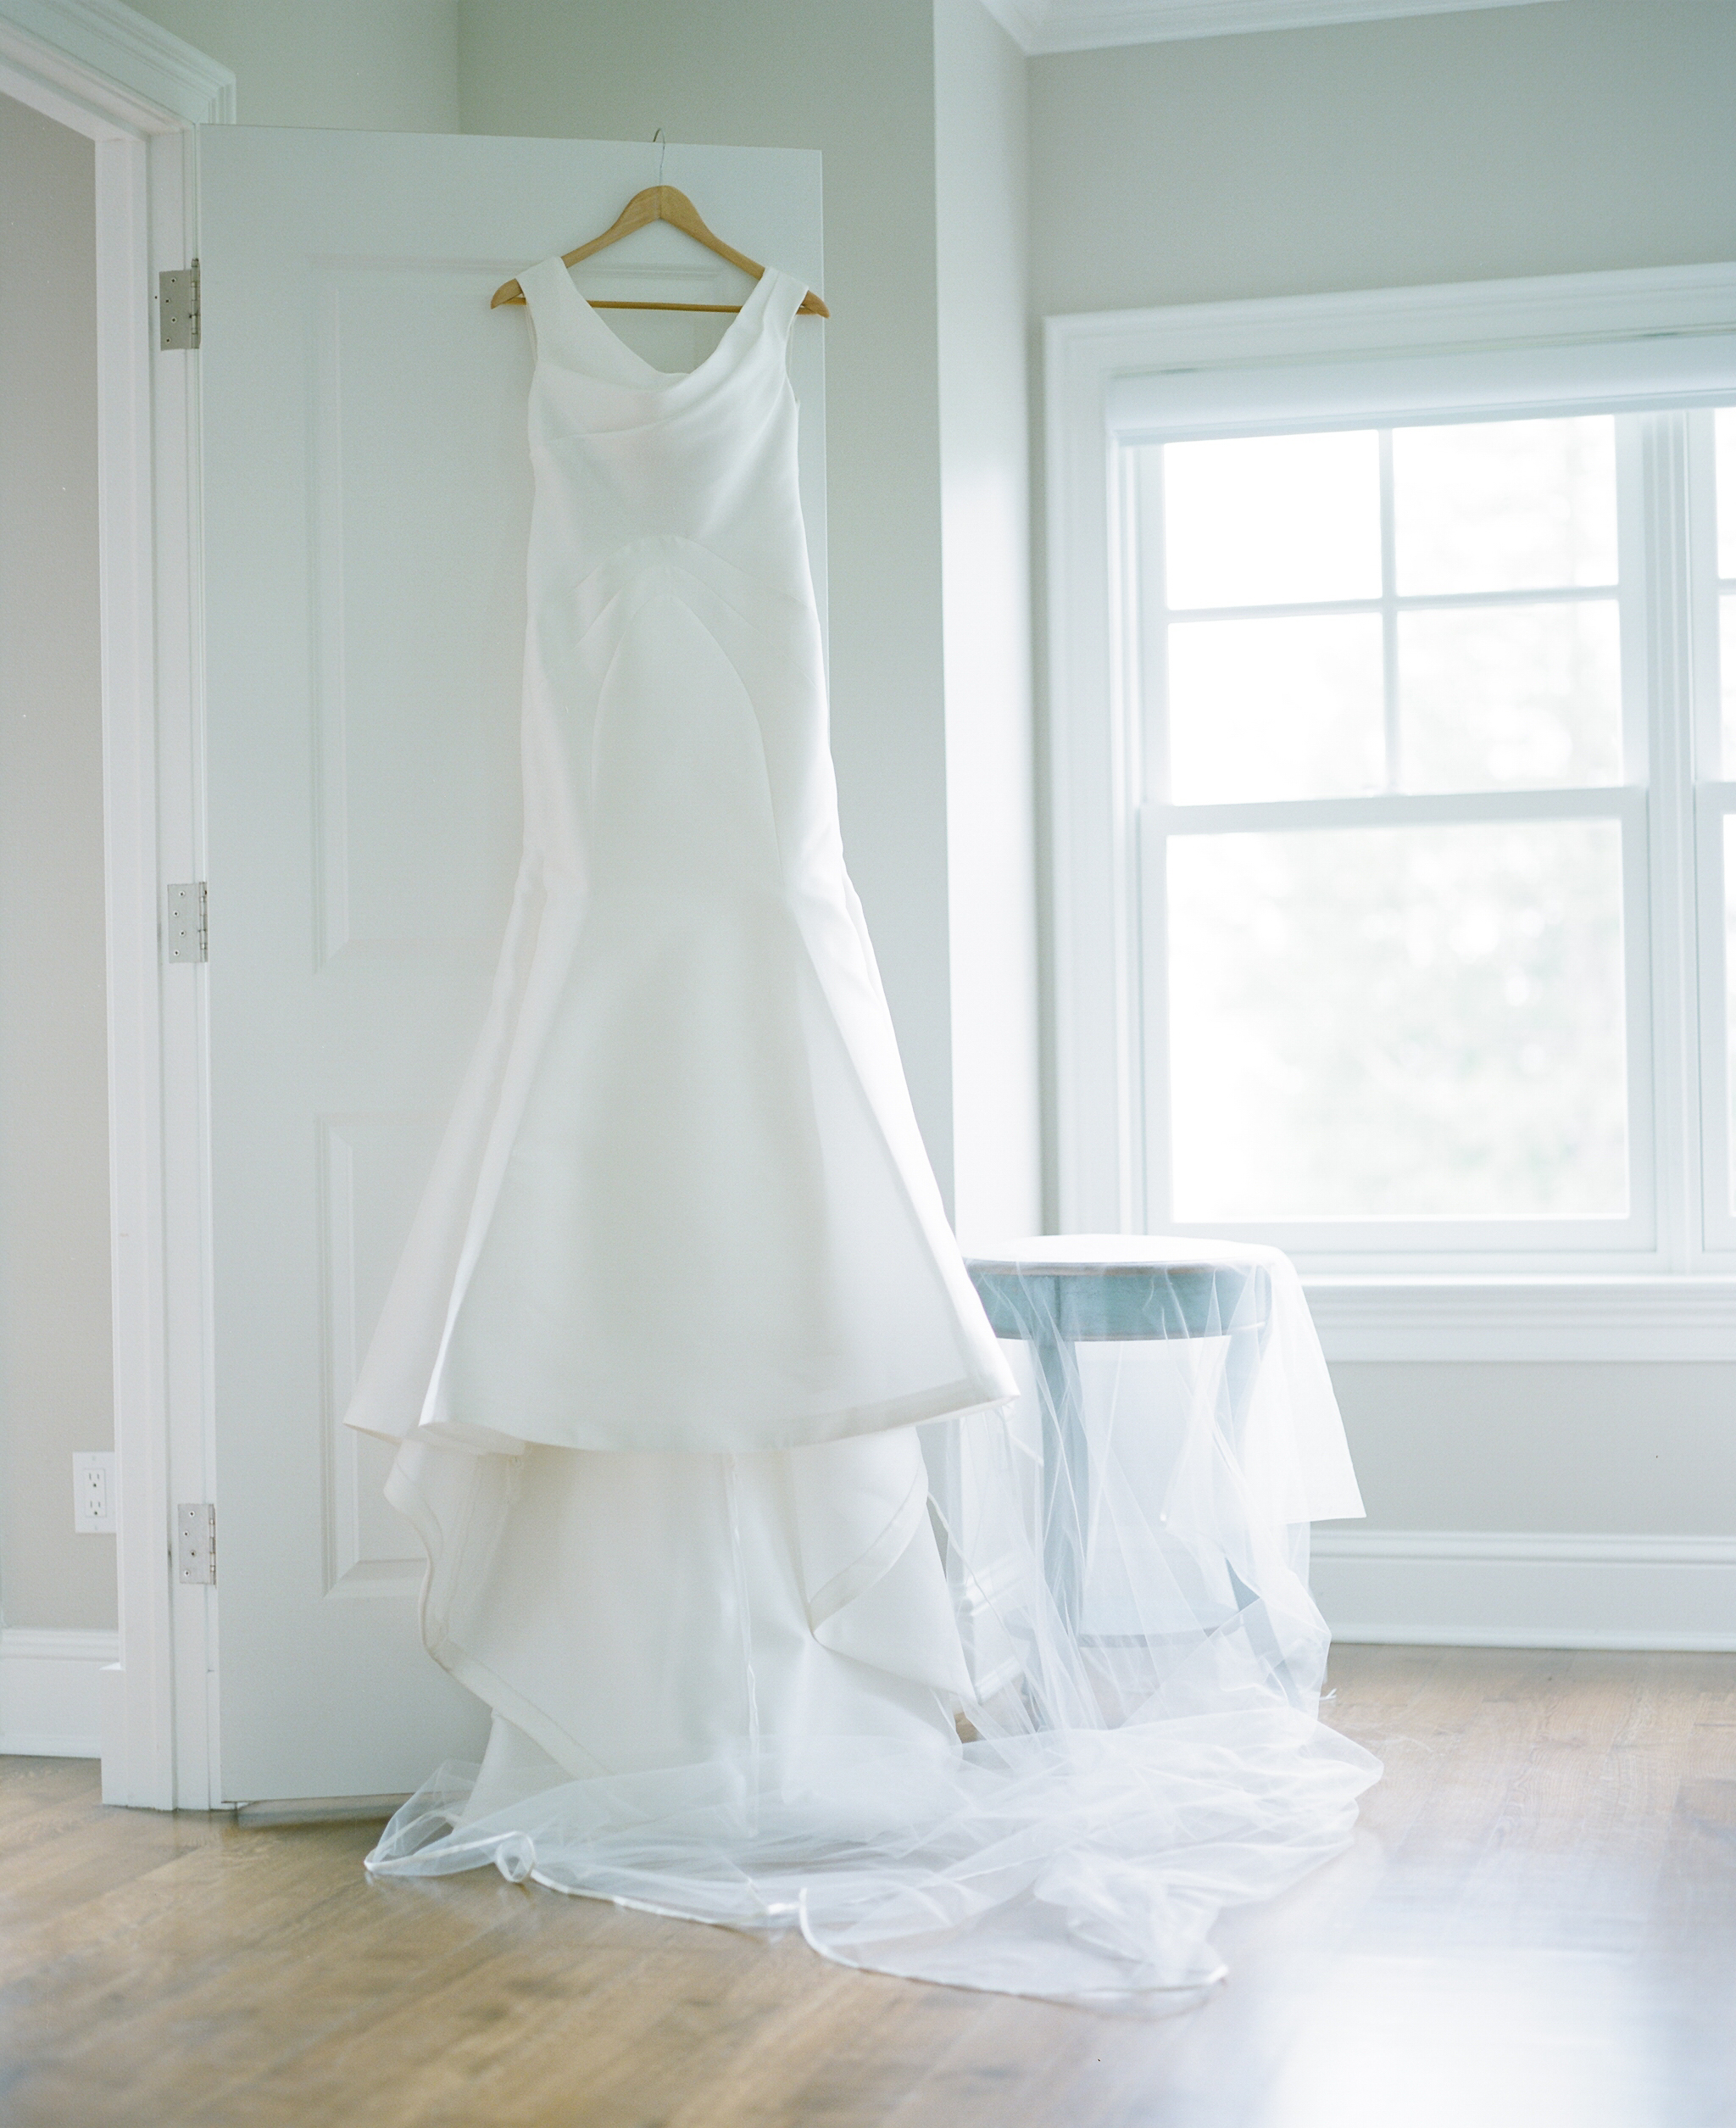 Lela Rose bridal gown from Gigi of Mequon